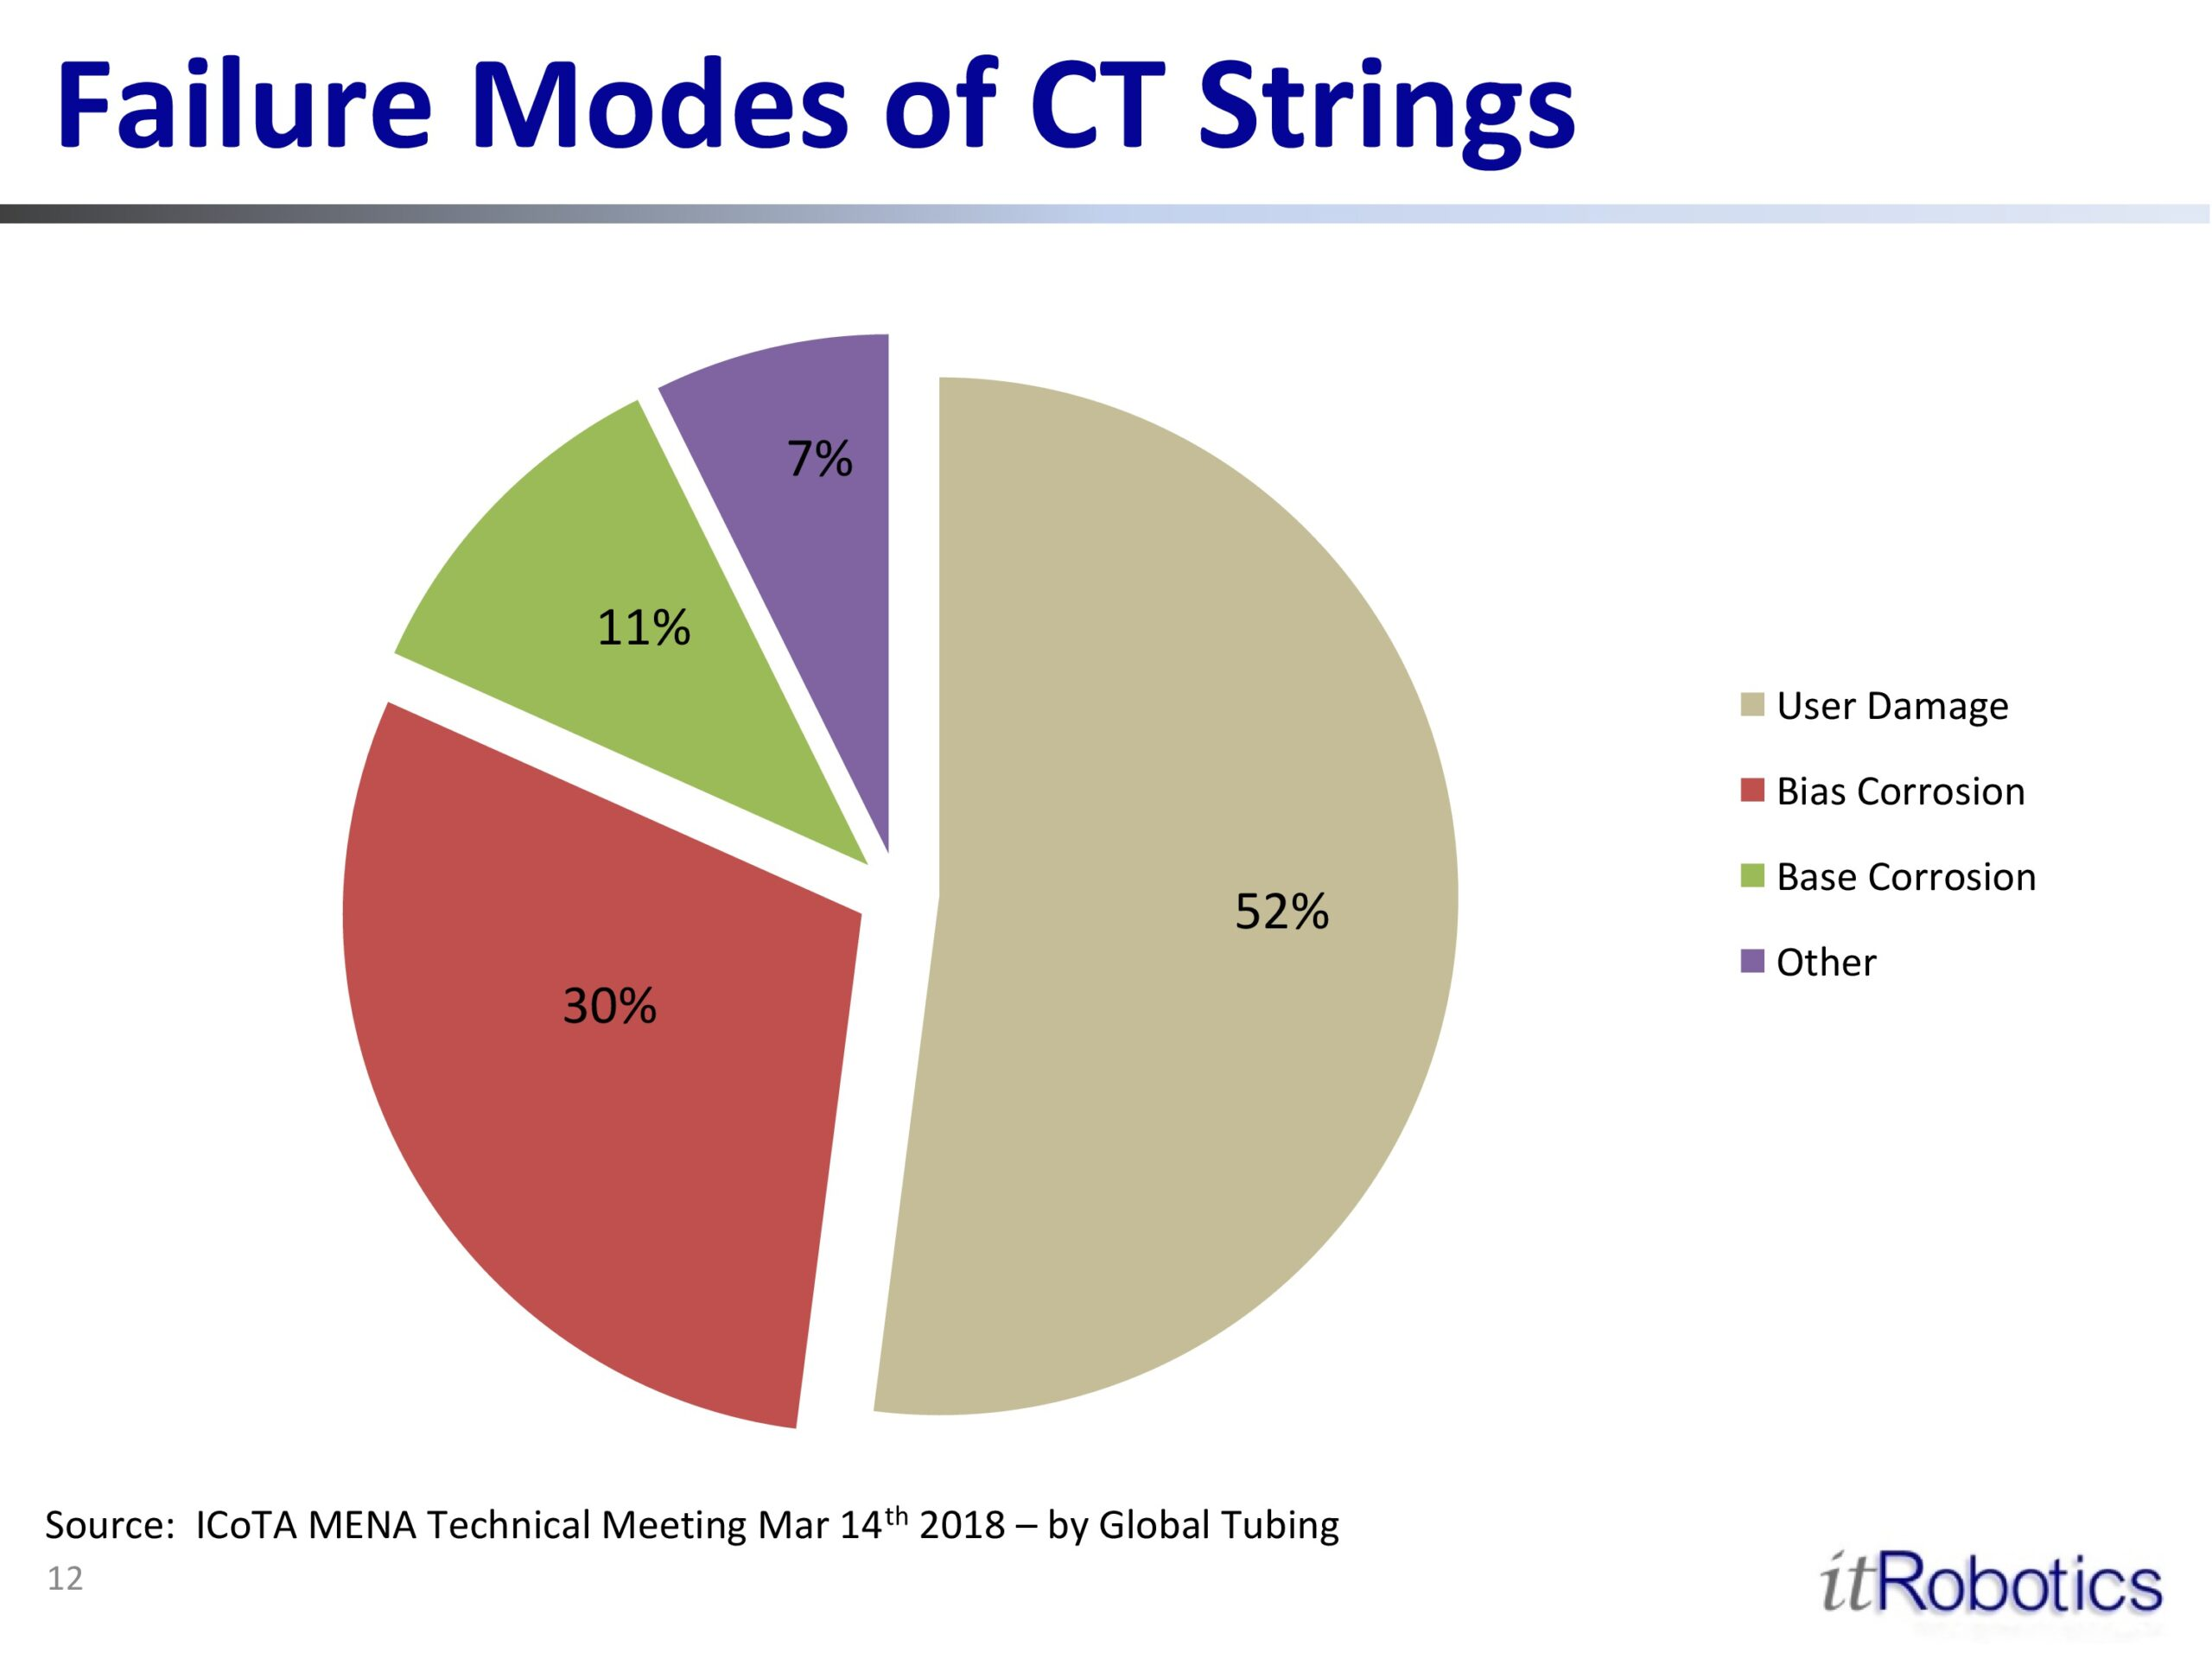 Failure Modes of CT Strings